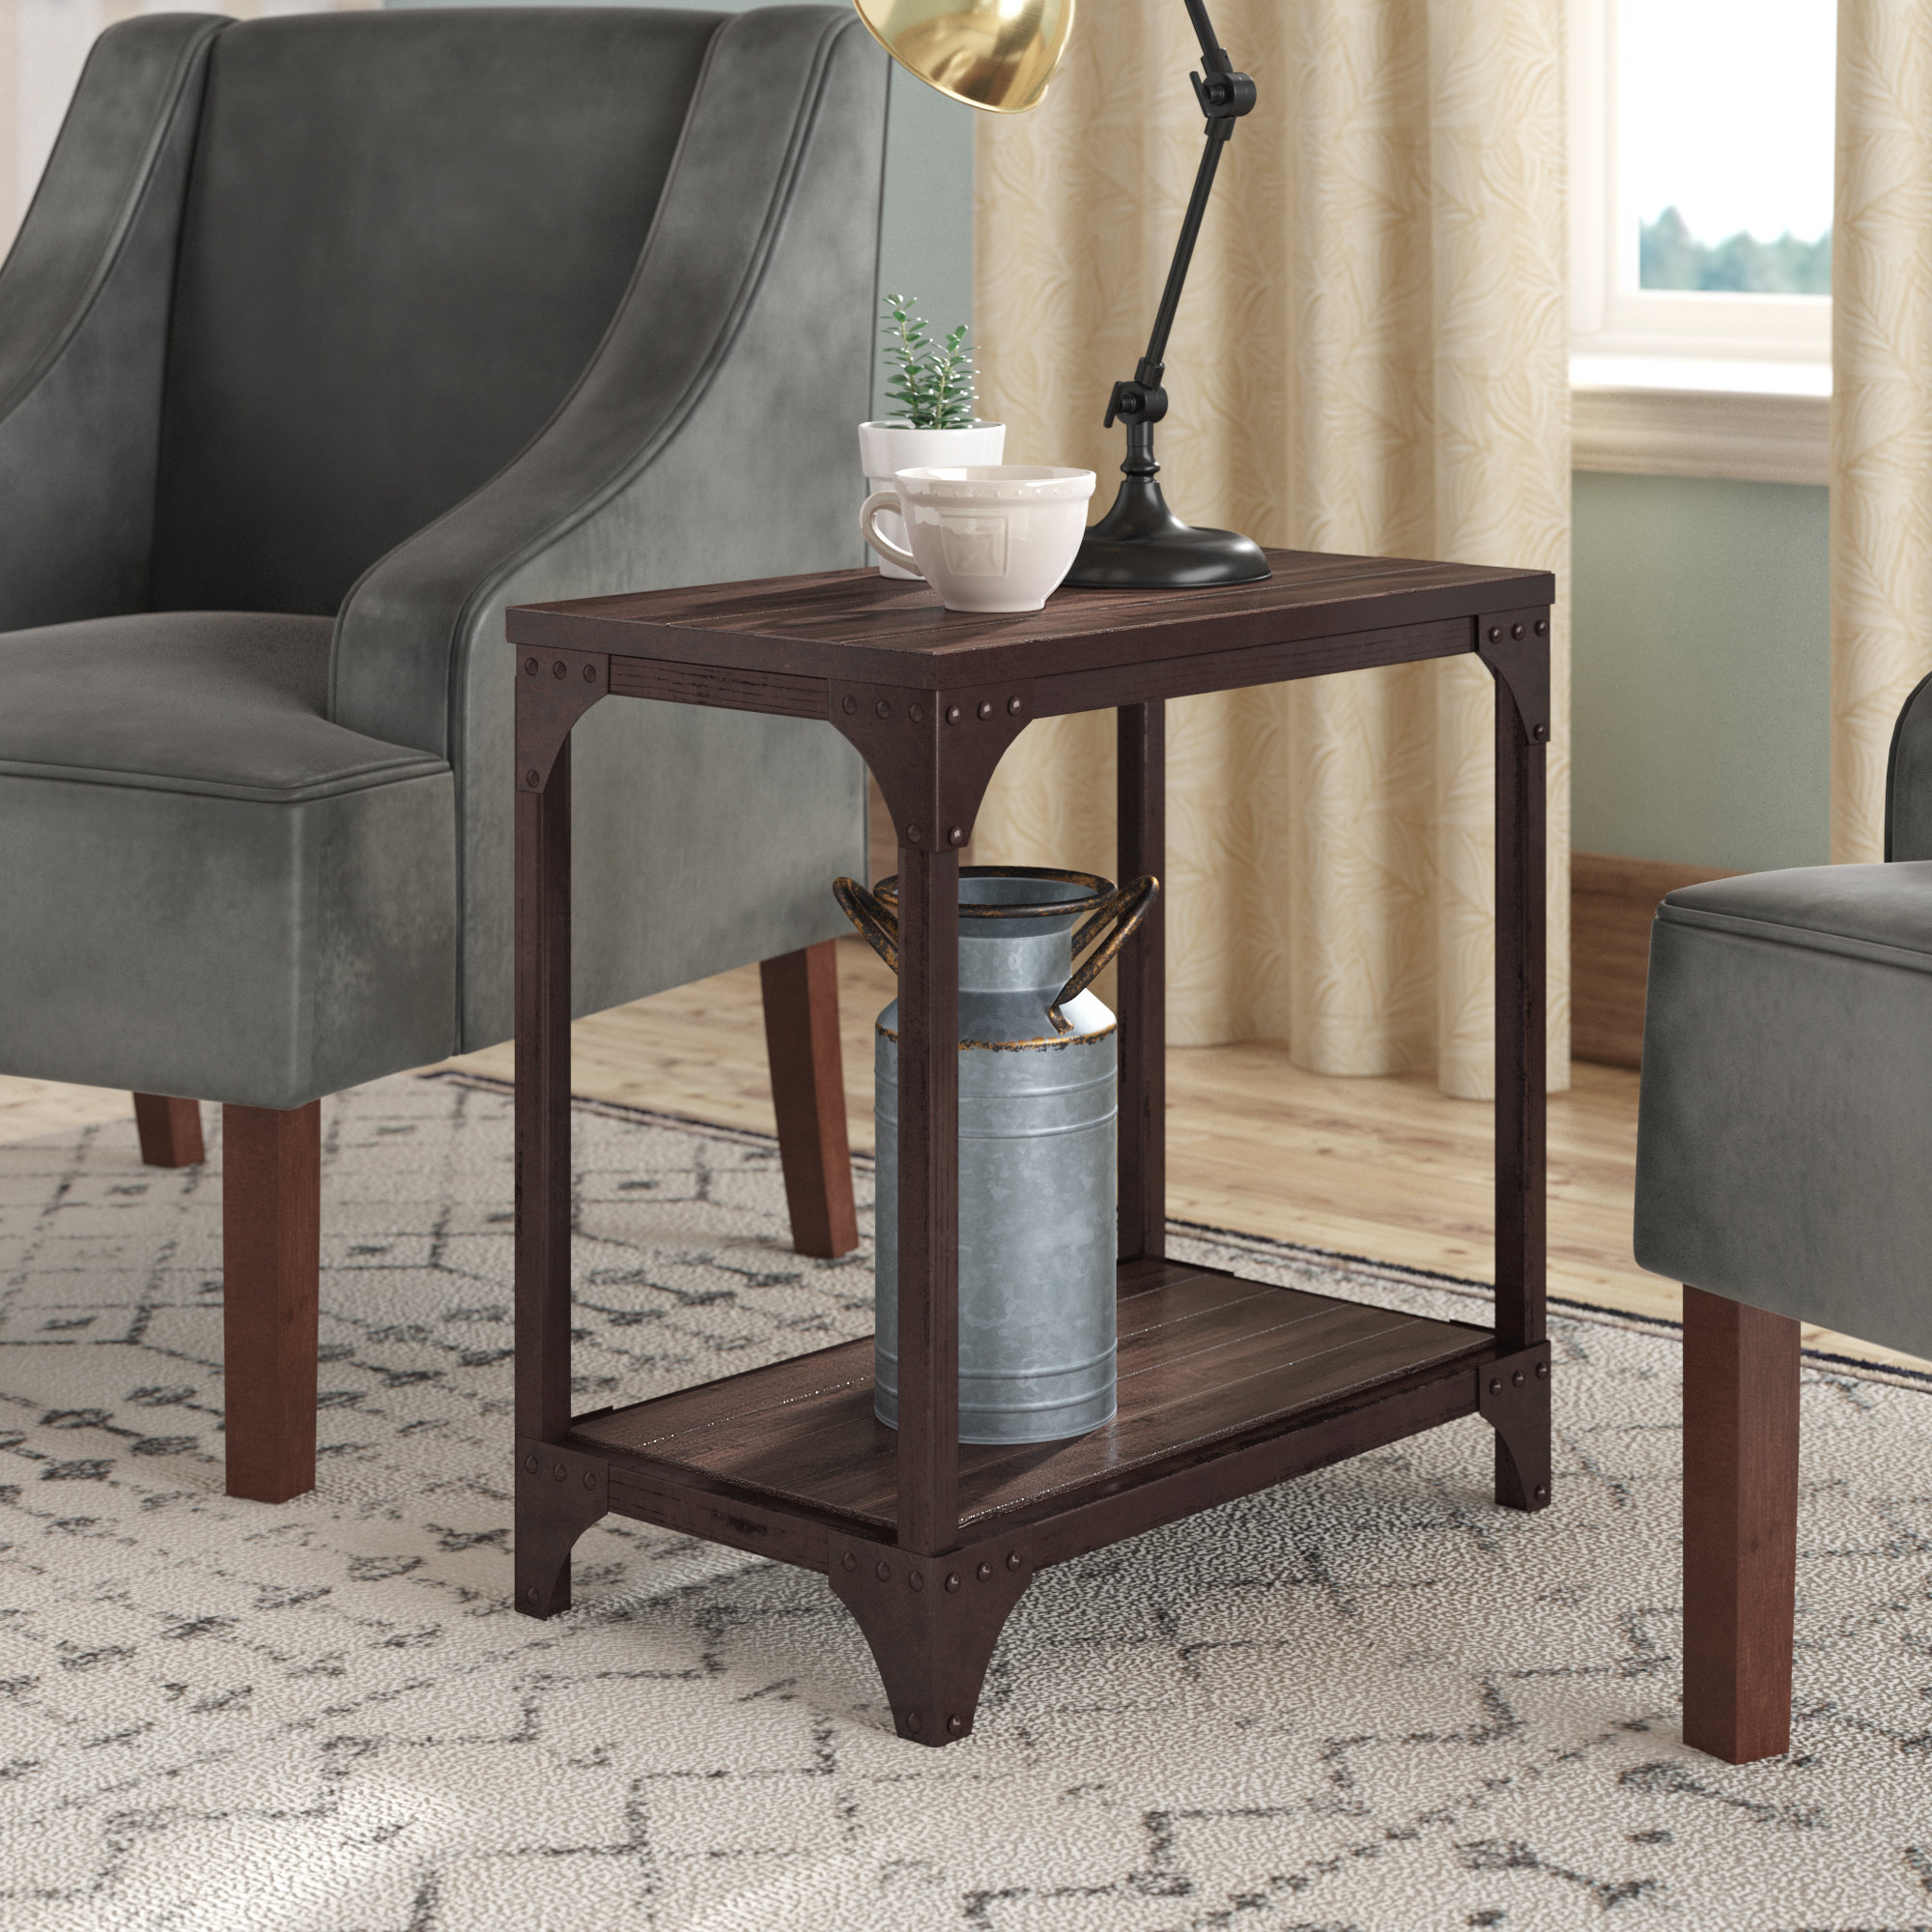 accent table with wheels amanda end room essentials mixed material teak rocking chairs barnwood tables aluminium door threshold trim drum seat dining legs wood country tablecloths